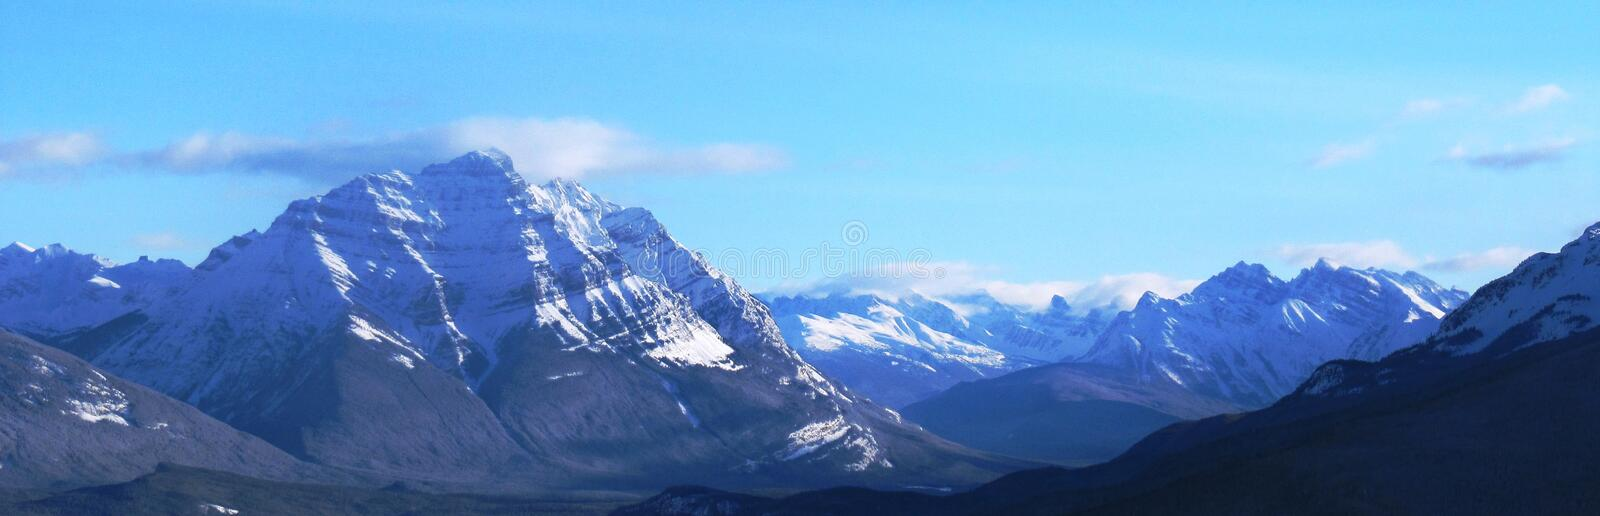 A Rocky mountain scene under a cloudy blue sky stock images